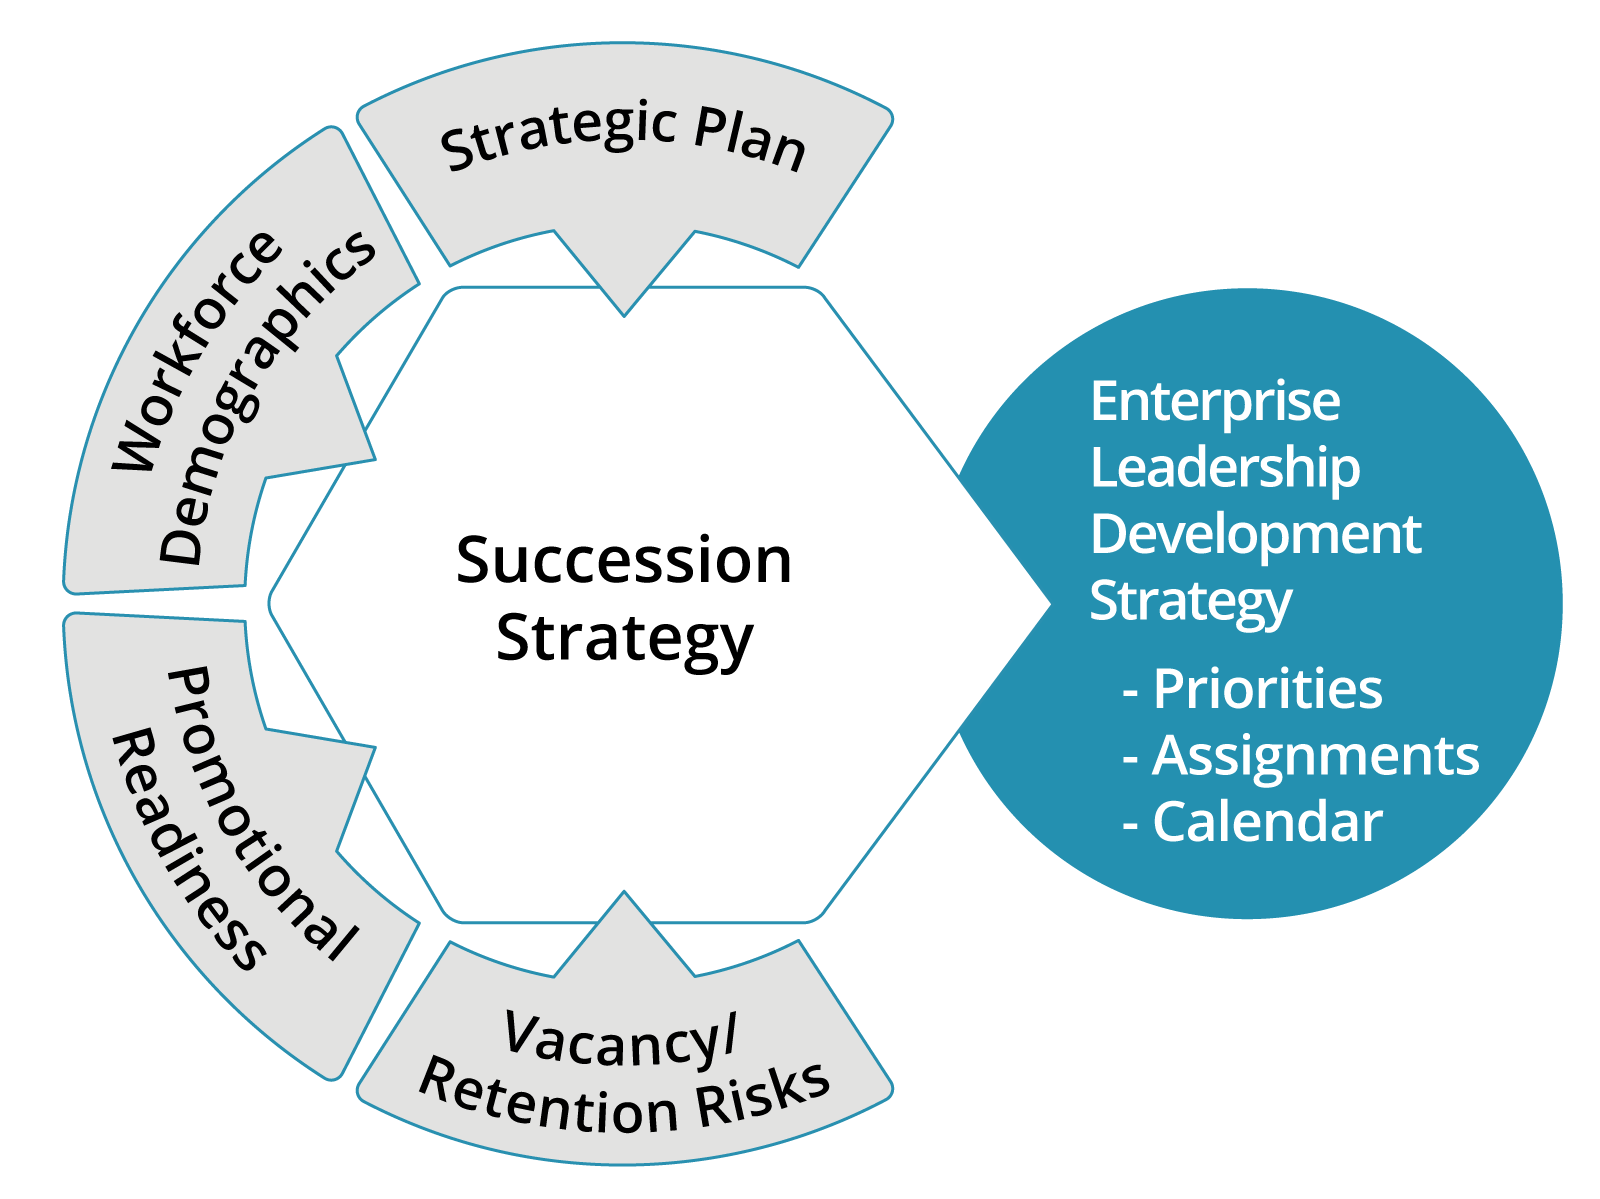 Triaxia's Succession Strategy Model